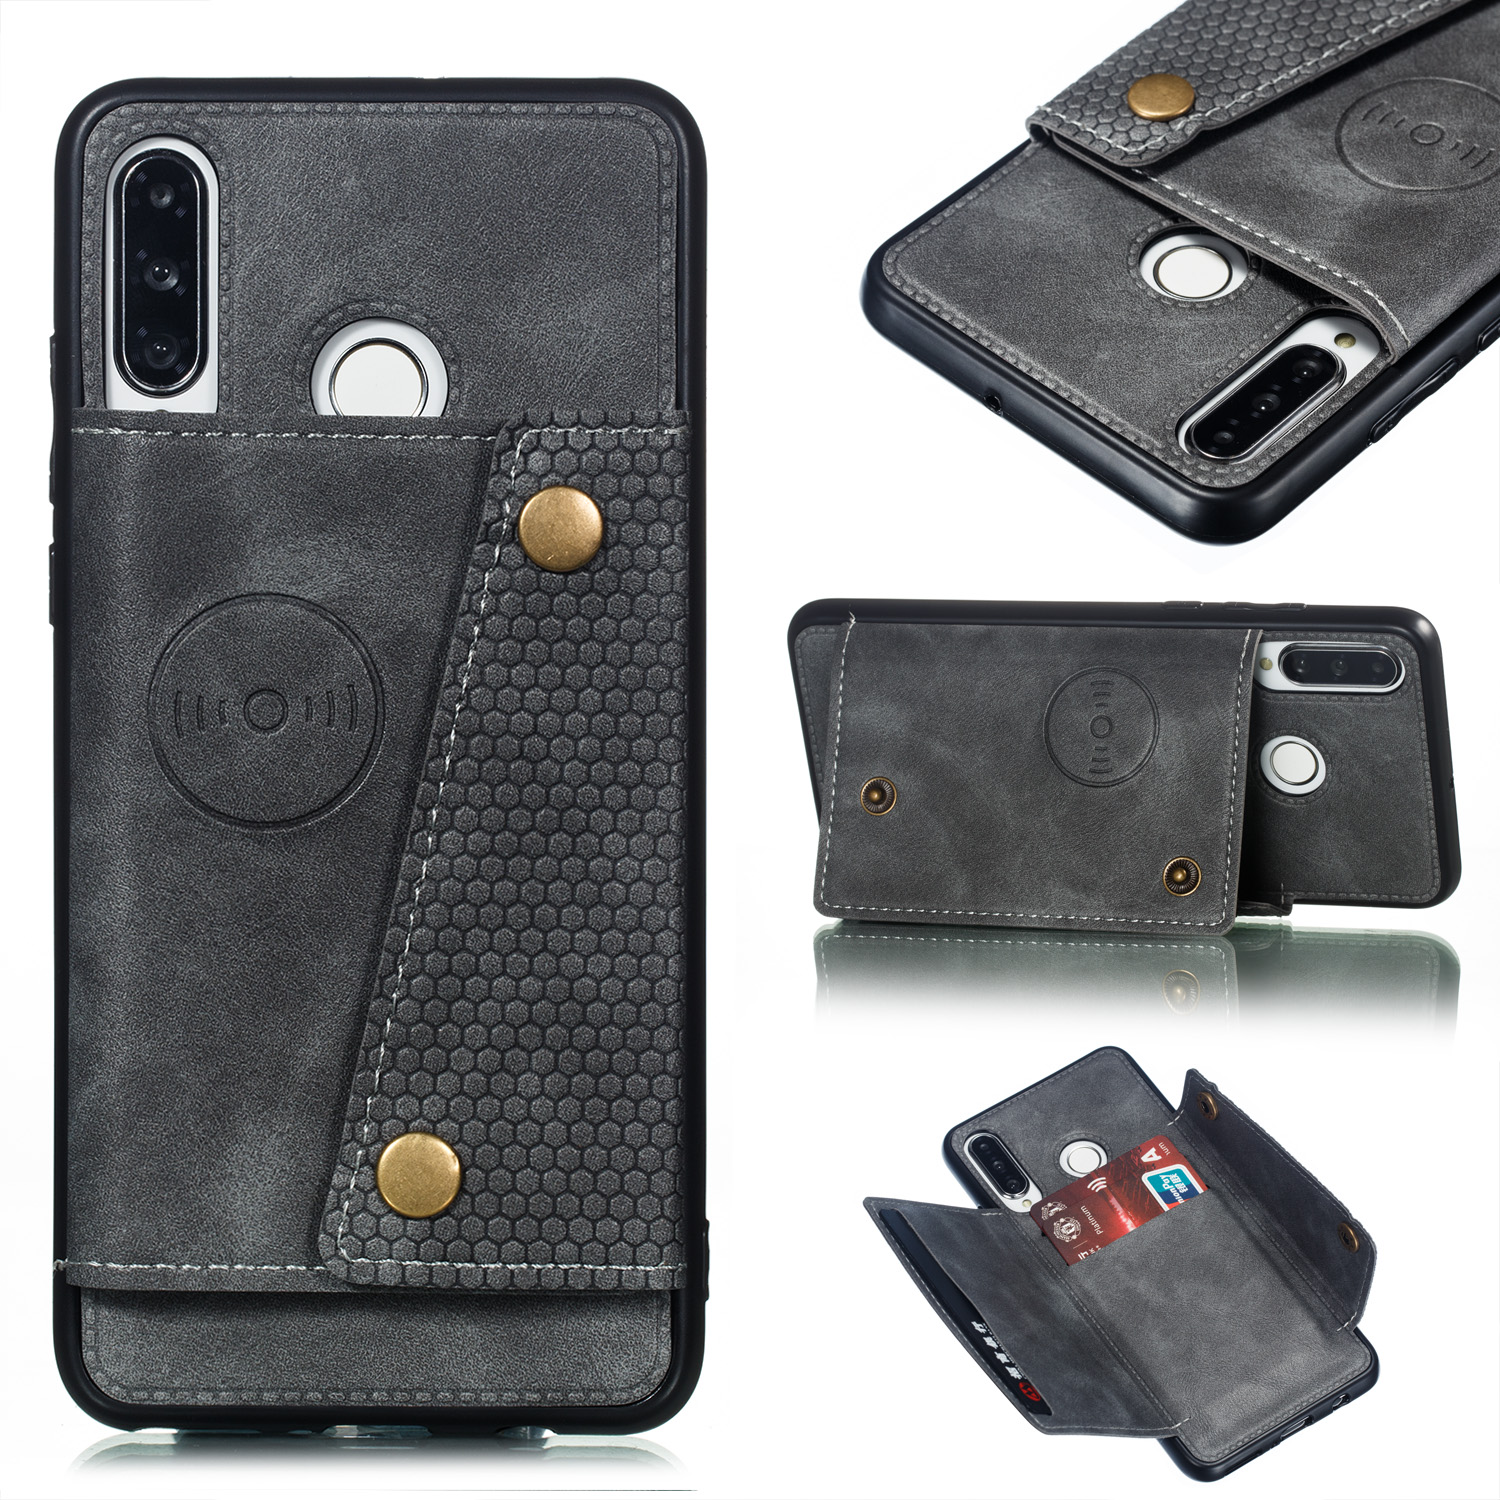 For Huawei P30 lite/nova 4E Double Buckle Non-slip Shockproof Cell Phone Case with Card Slot Bracket gray